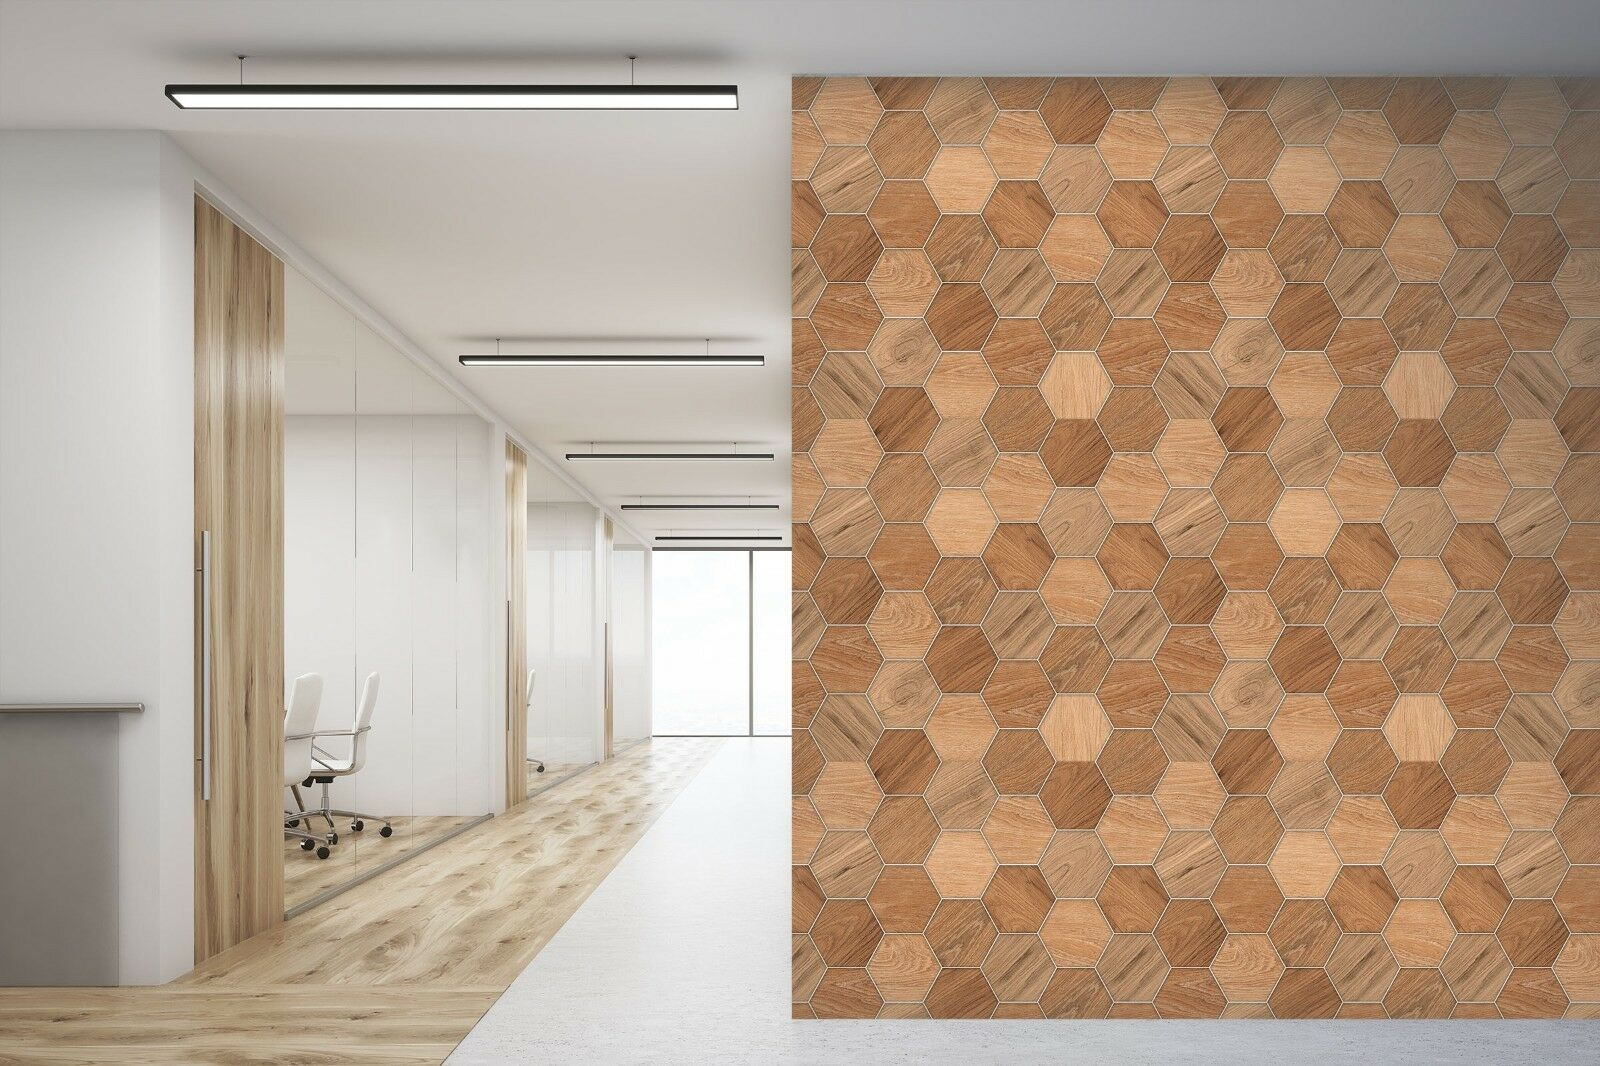 3D Hexagonal Board 876 Texture Tiles Marble Wall Paper Decal Wallpaper Mural